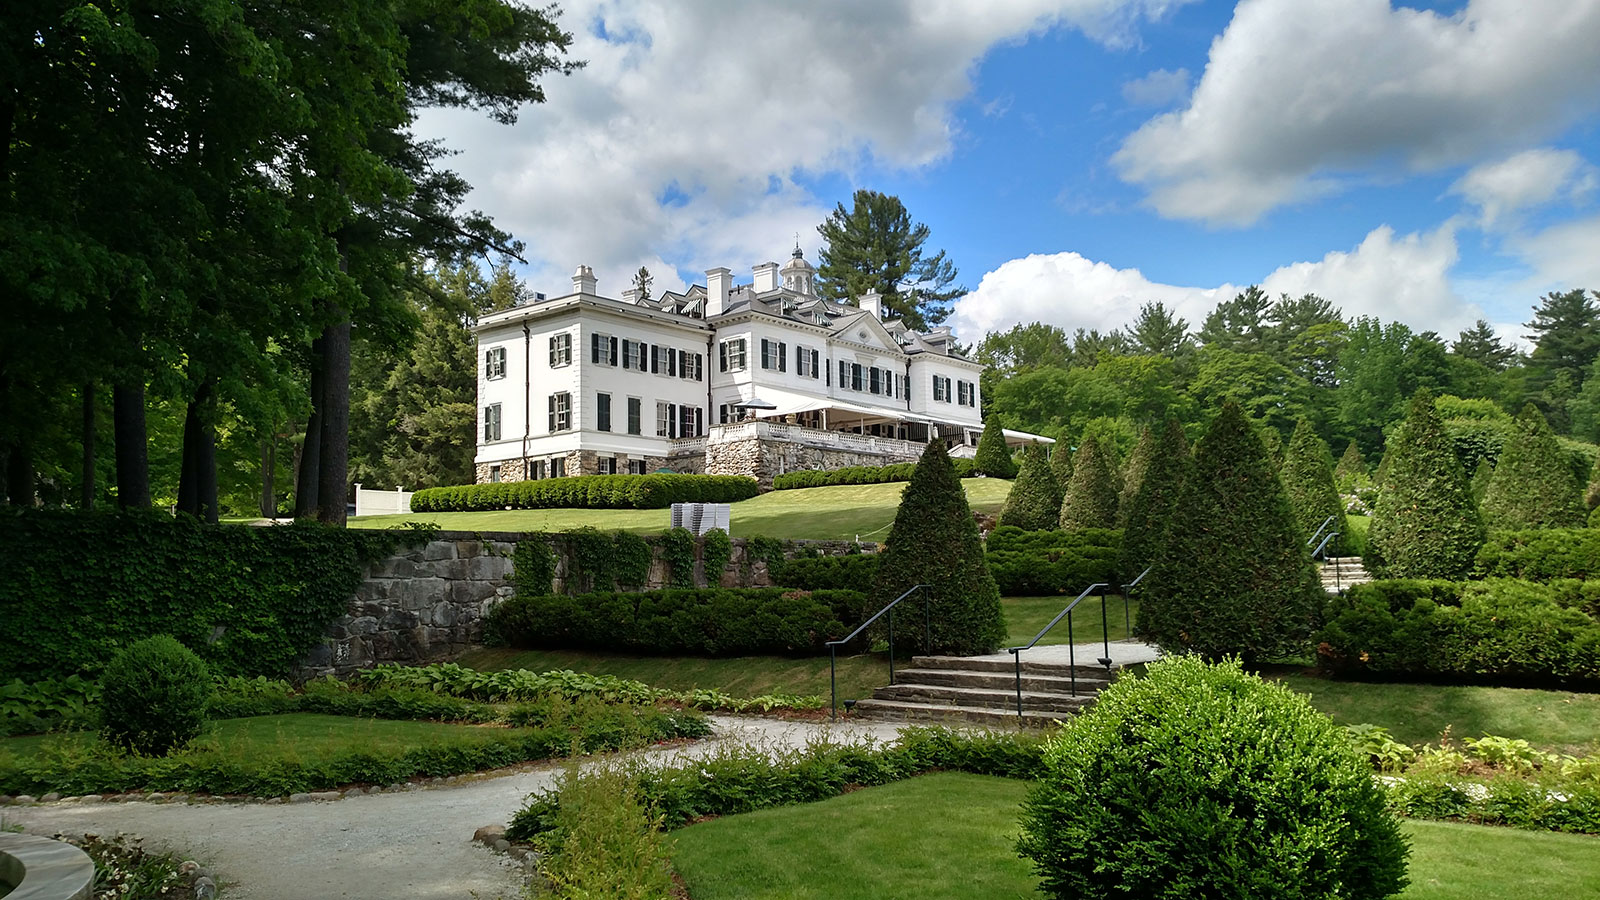 The Mount - Edith Wharton's former home